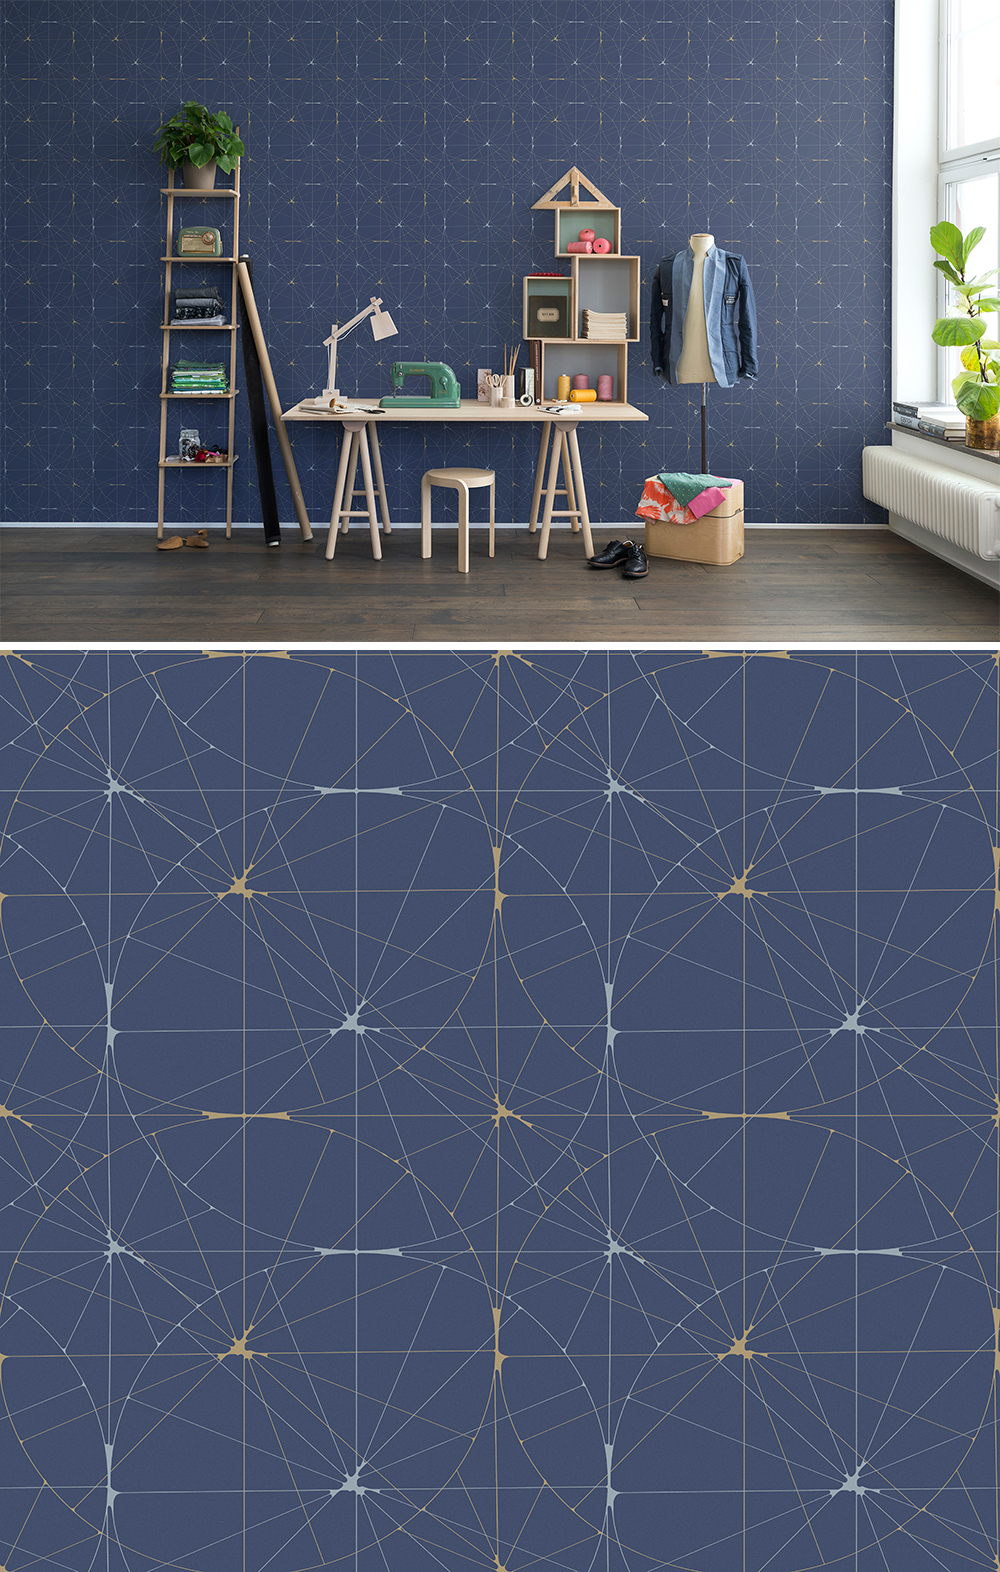 WALL-MURAL-BLUE-GOLD-CIRCLES-TIMELESS-RETRO-FIFTIES-PATTERN-GE-wallpaper-wp44012605